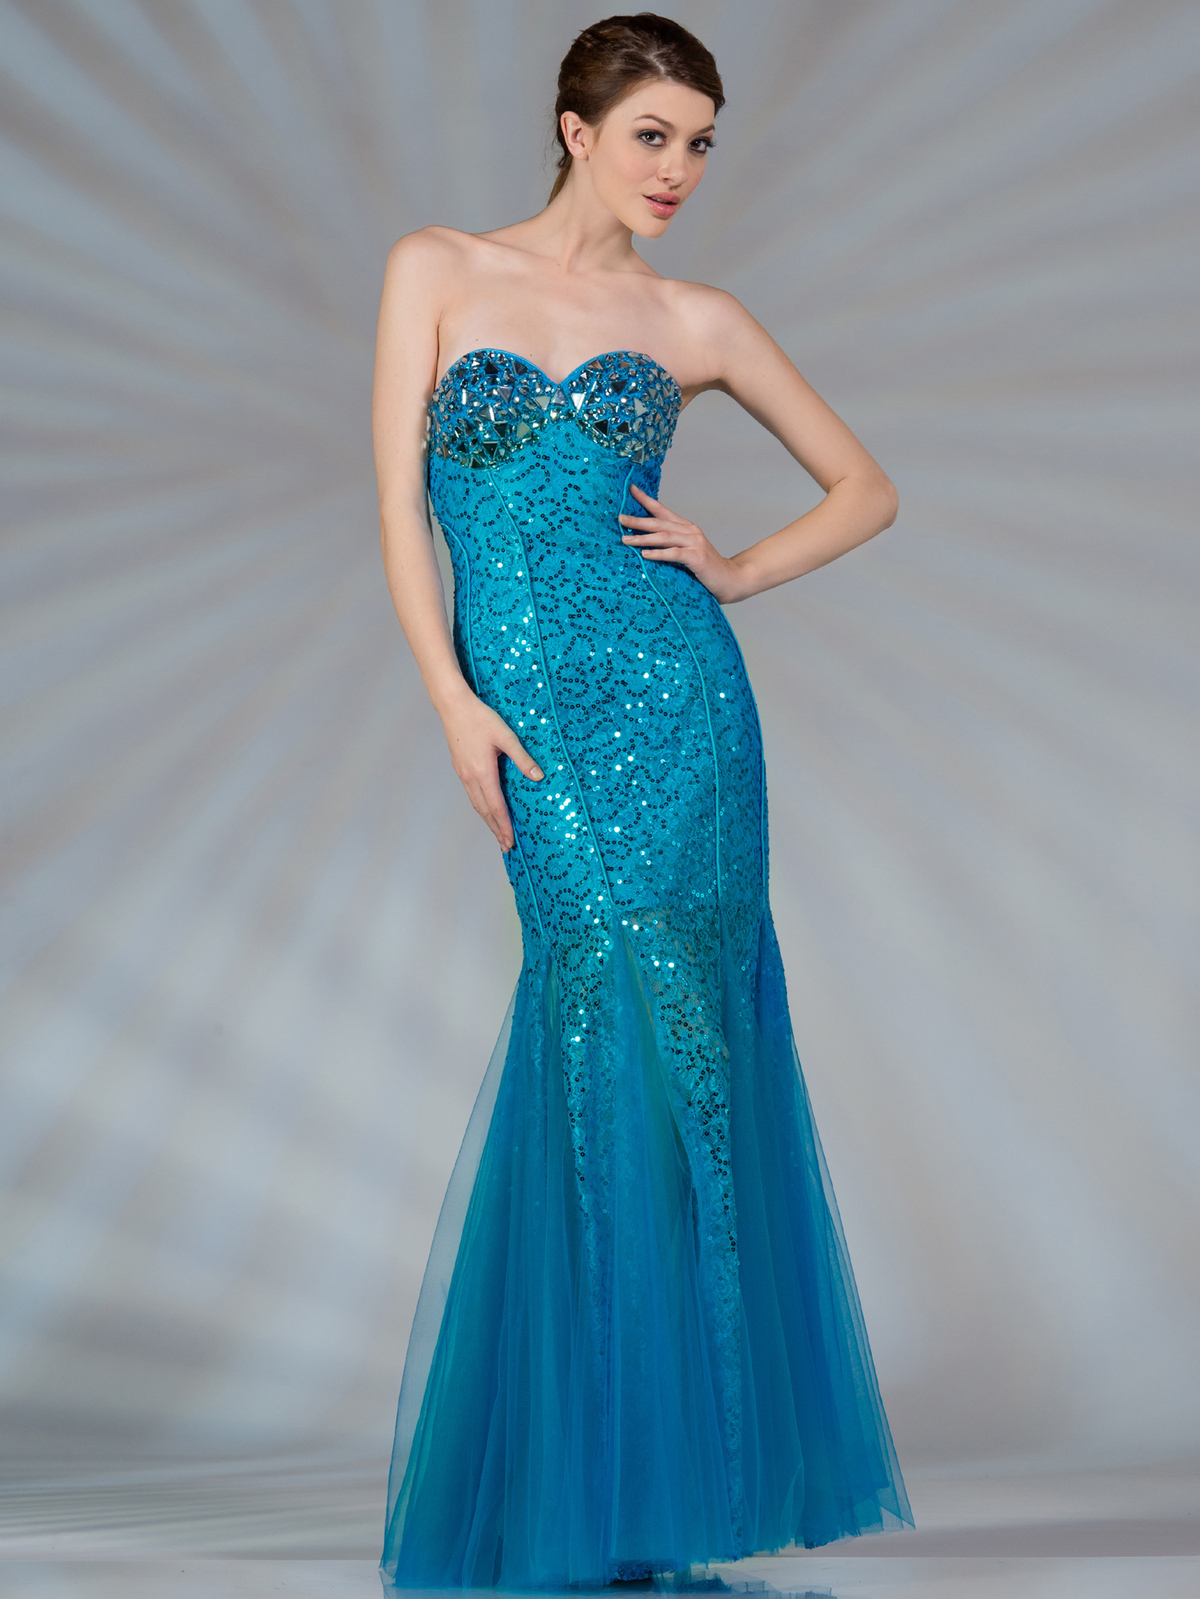 Blue Mermaid Jeweled and Sequin Prom Dress - Sung Boutique L.A.